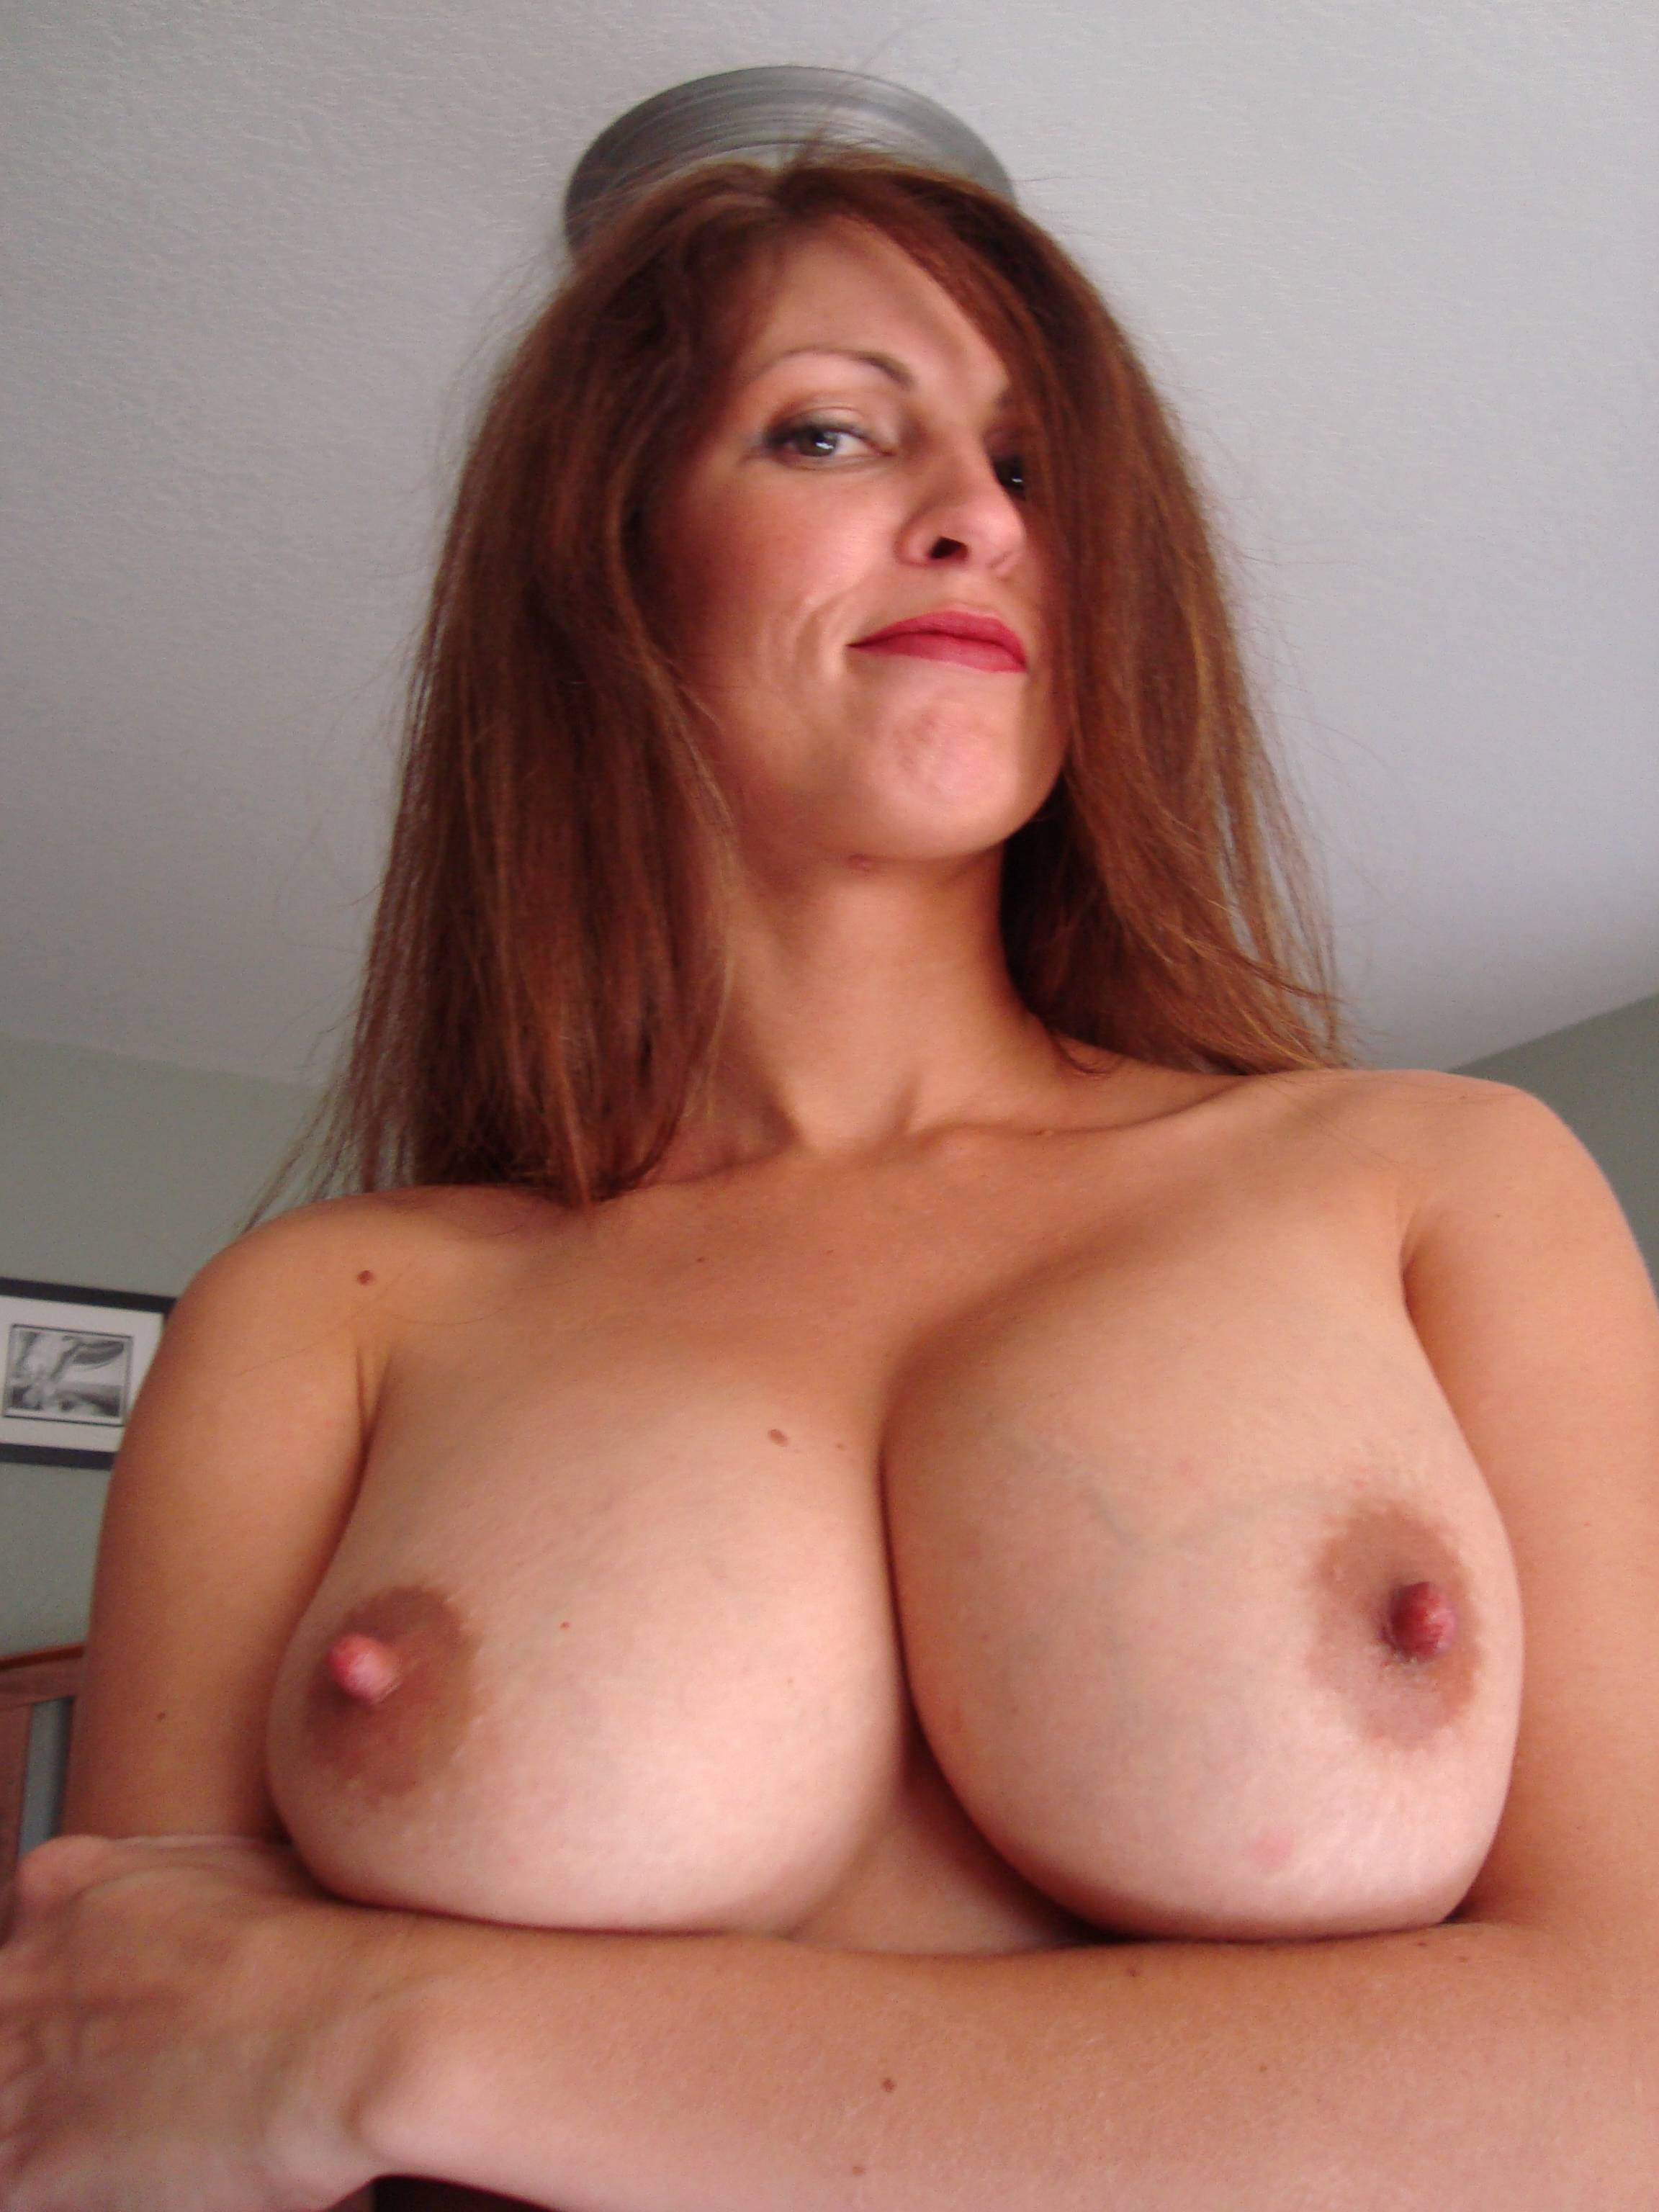 Consider, big boob lady older sex